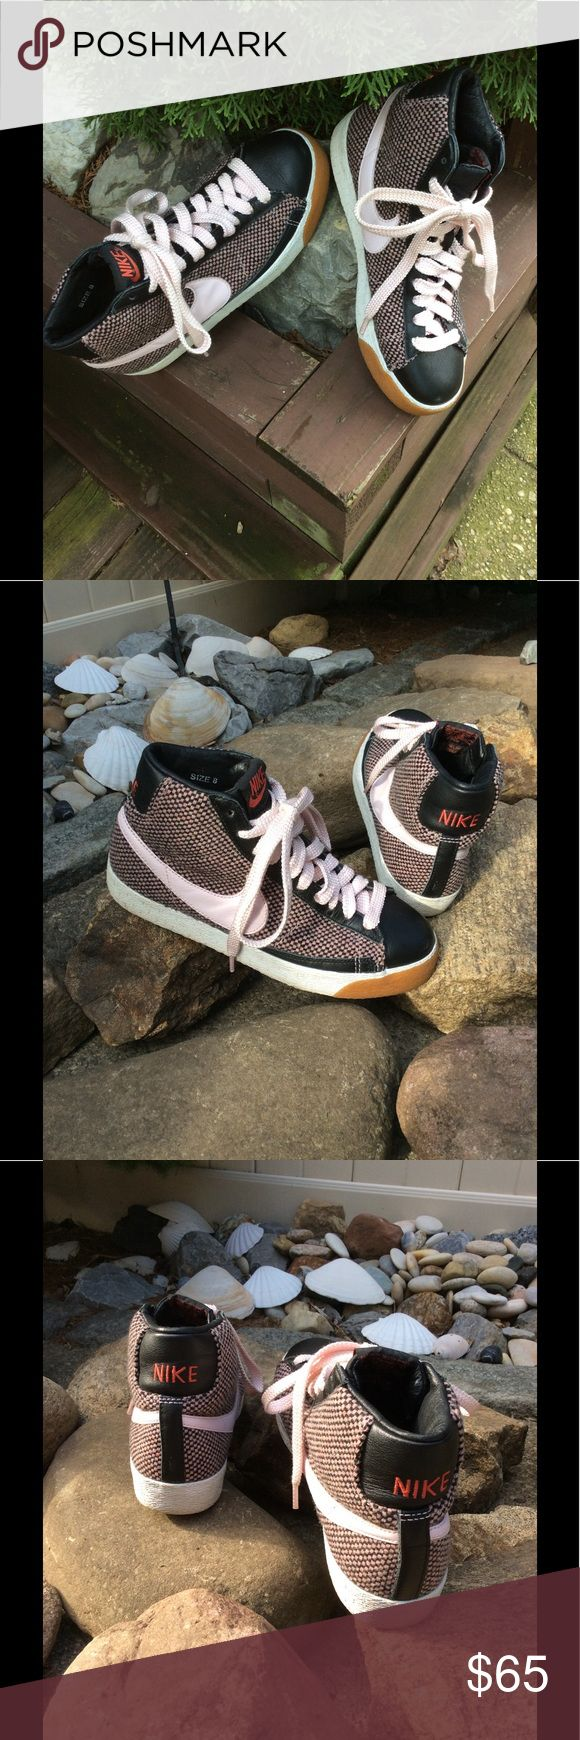 NIKE TWEED/LEATHER HI TOP SNEAKER SZ 8 Worn once and very comfortable .. I'm only selling because I prefer slip on sneakers.. the hi top laces take too long for my busy lifestyle.. but absolutely love once on 🤗 the tweed , laces and Nike mark is a light pink color. Nike Shoes Sneakers